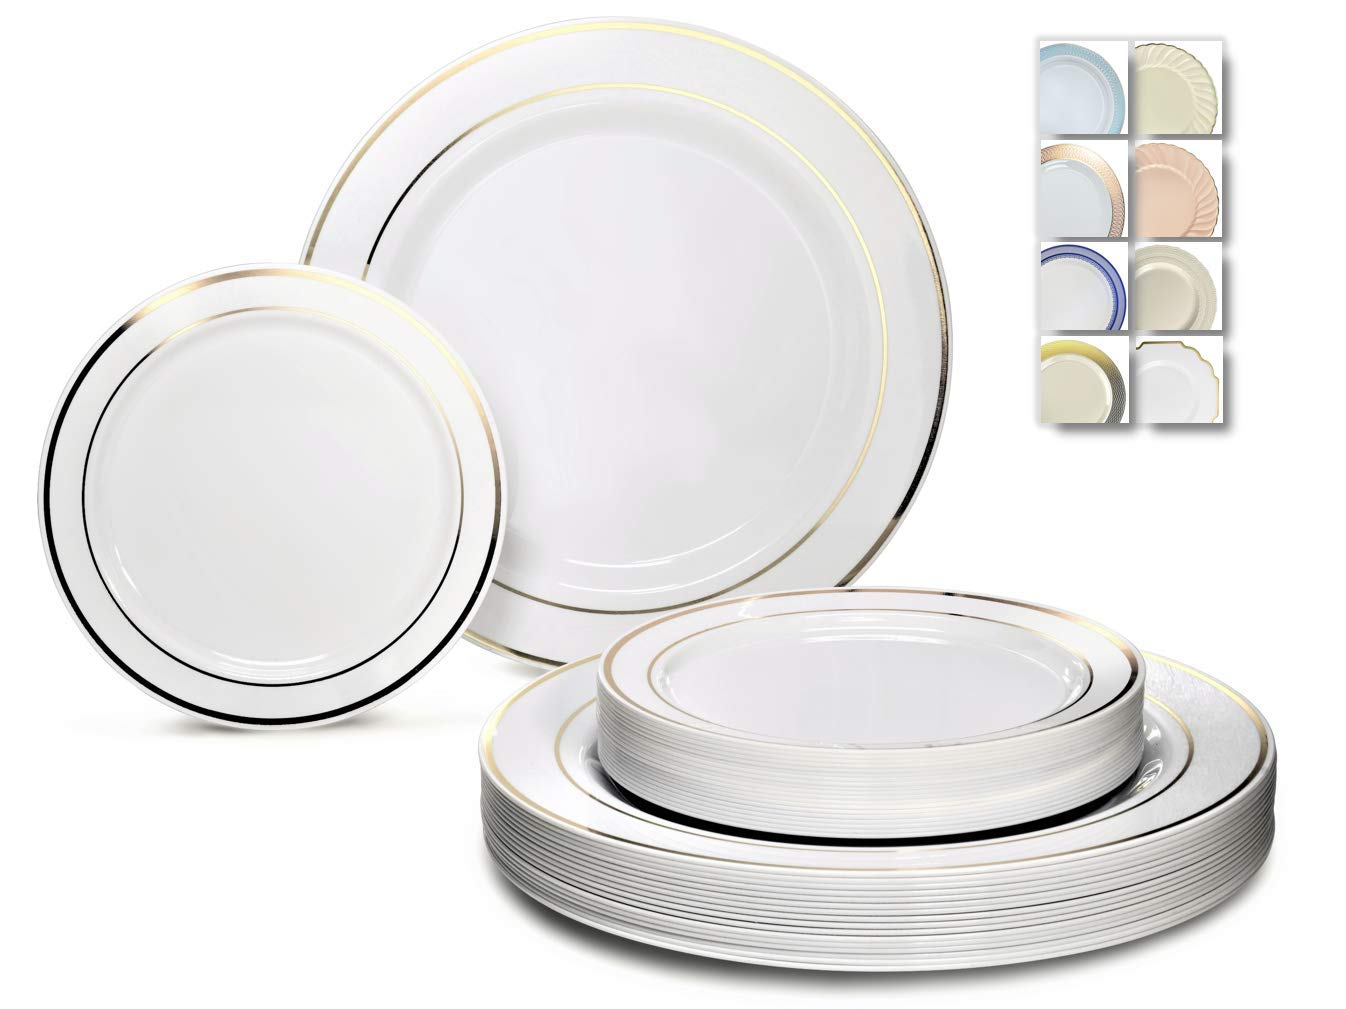 '' OCCASIONS'' 50 Plates Pack (25 Guests) - Heavyweight Wedding Party Disposable Plastic Plate Set - 25 x 10.5'' Dinner + 25 x 7.5'' Salad/dessert plates (White with Gold Rim) by OCCASIONS FINEST PLASTIC TABLEWARE